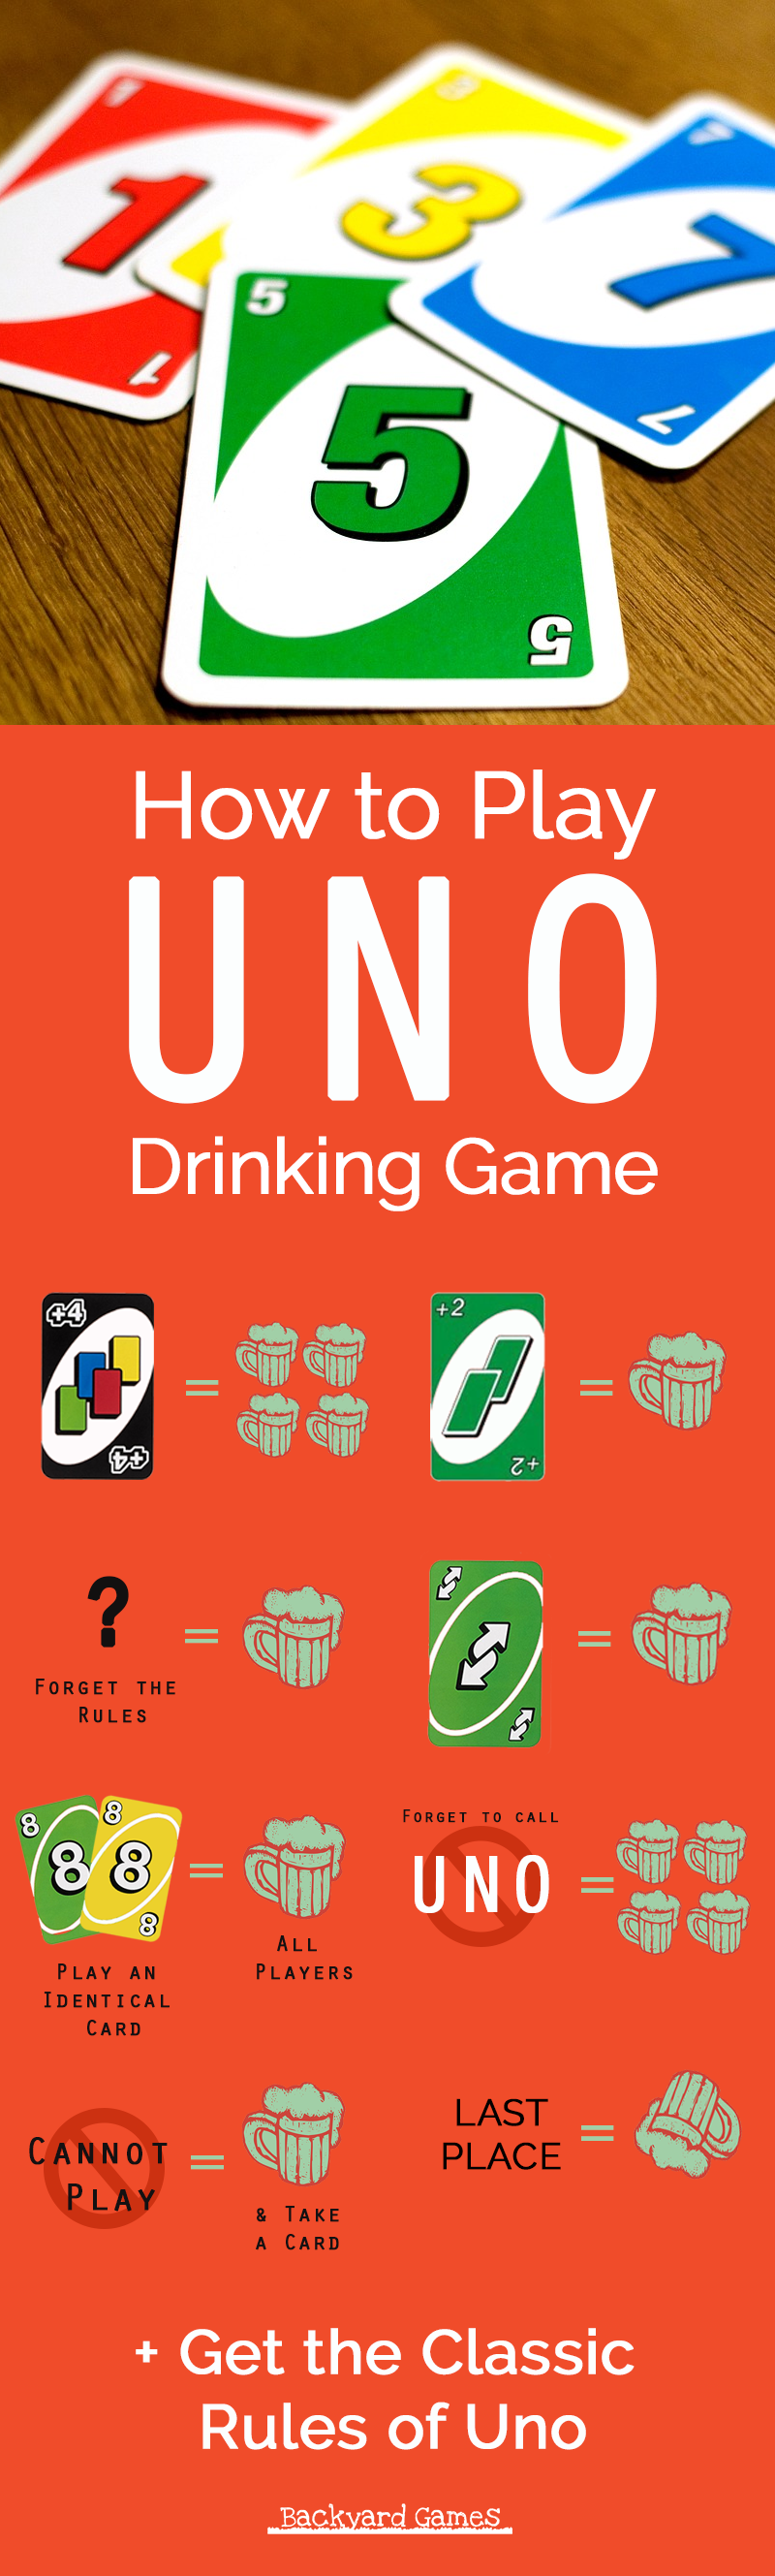 Uno Drinking Card Games Classic Rules And How To Play Drunken Uno